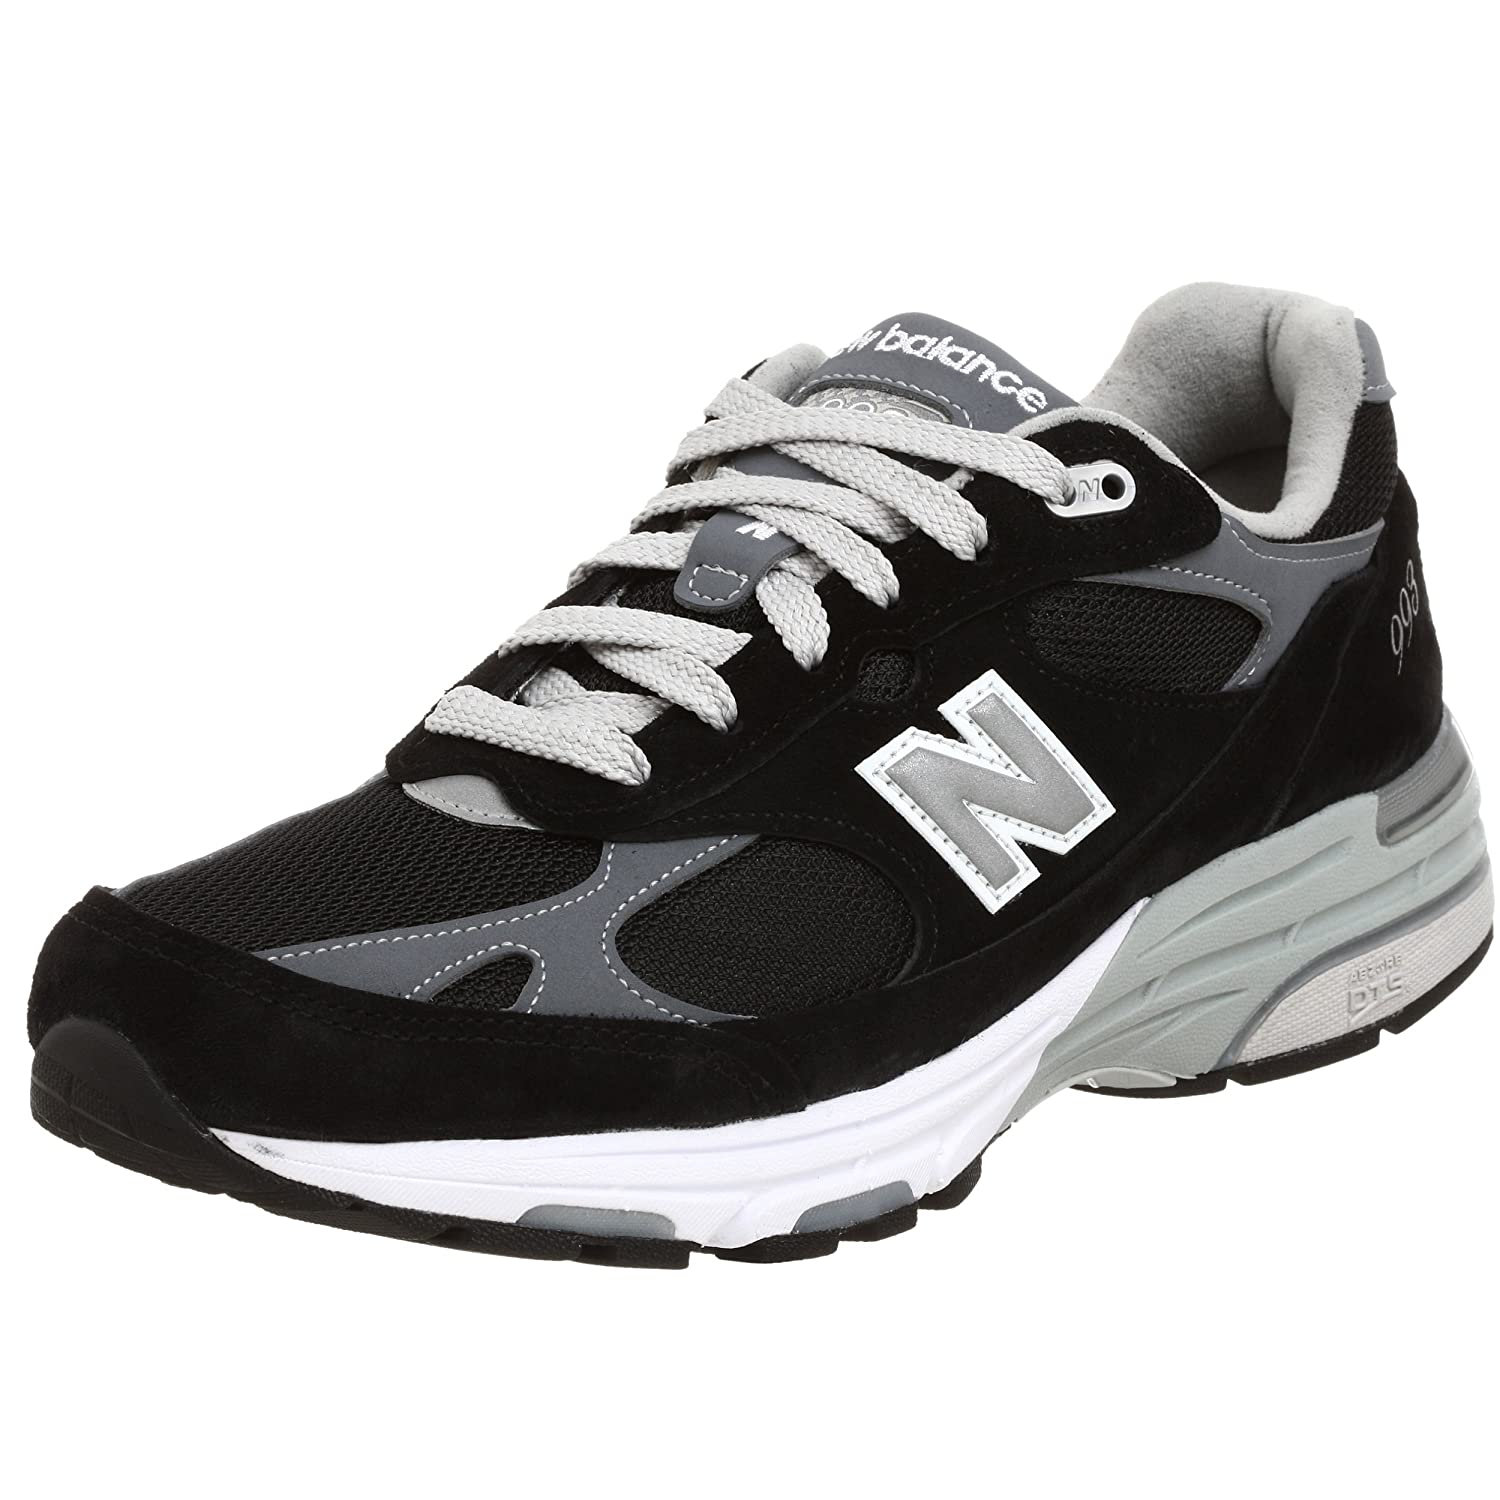 competitive price a61d1 2df26 New Balance 993 - Find The LOWEST Prices On The Internet ...